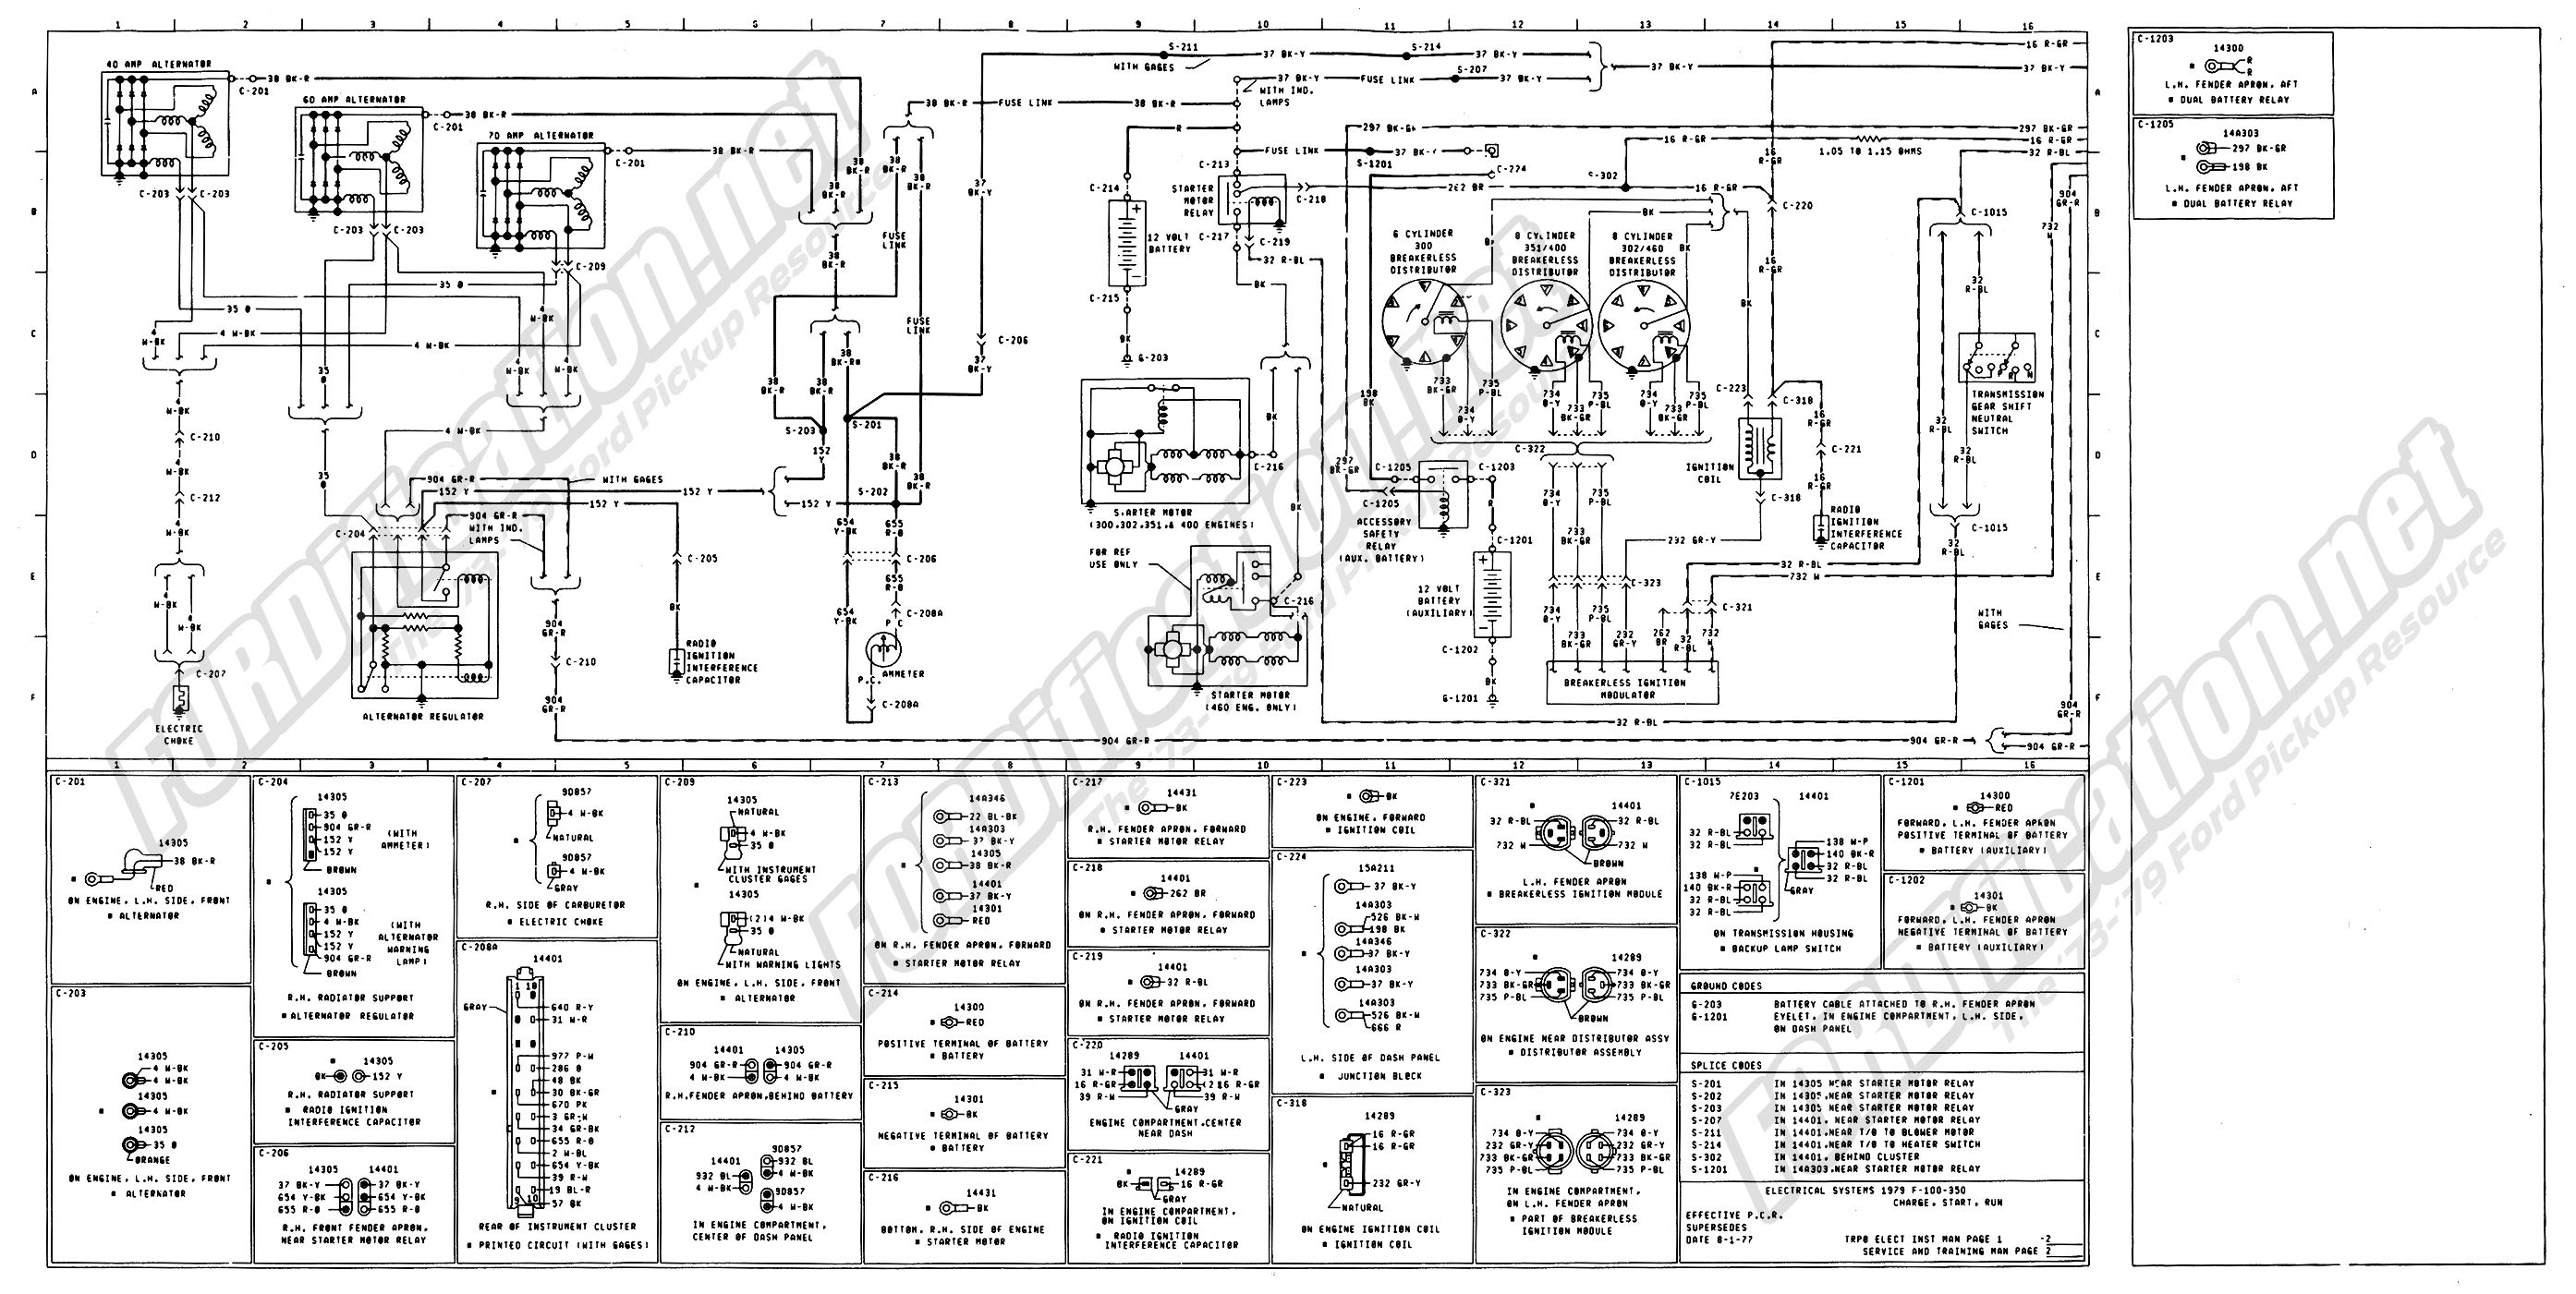 wiring_79master_2of9 72 f350 ignition question wiring ford truck enthusiasts forums Universal Ignition Switch Wiring Diagram at gsmx.co